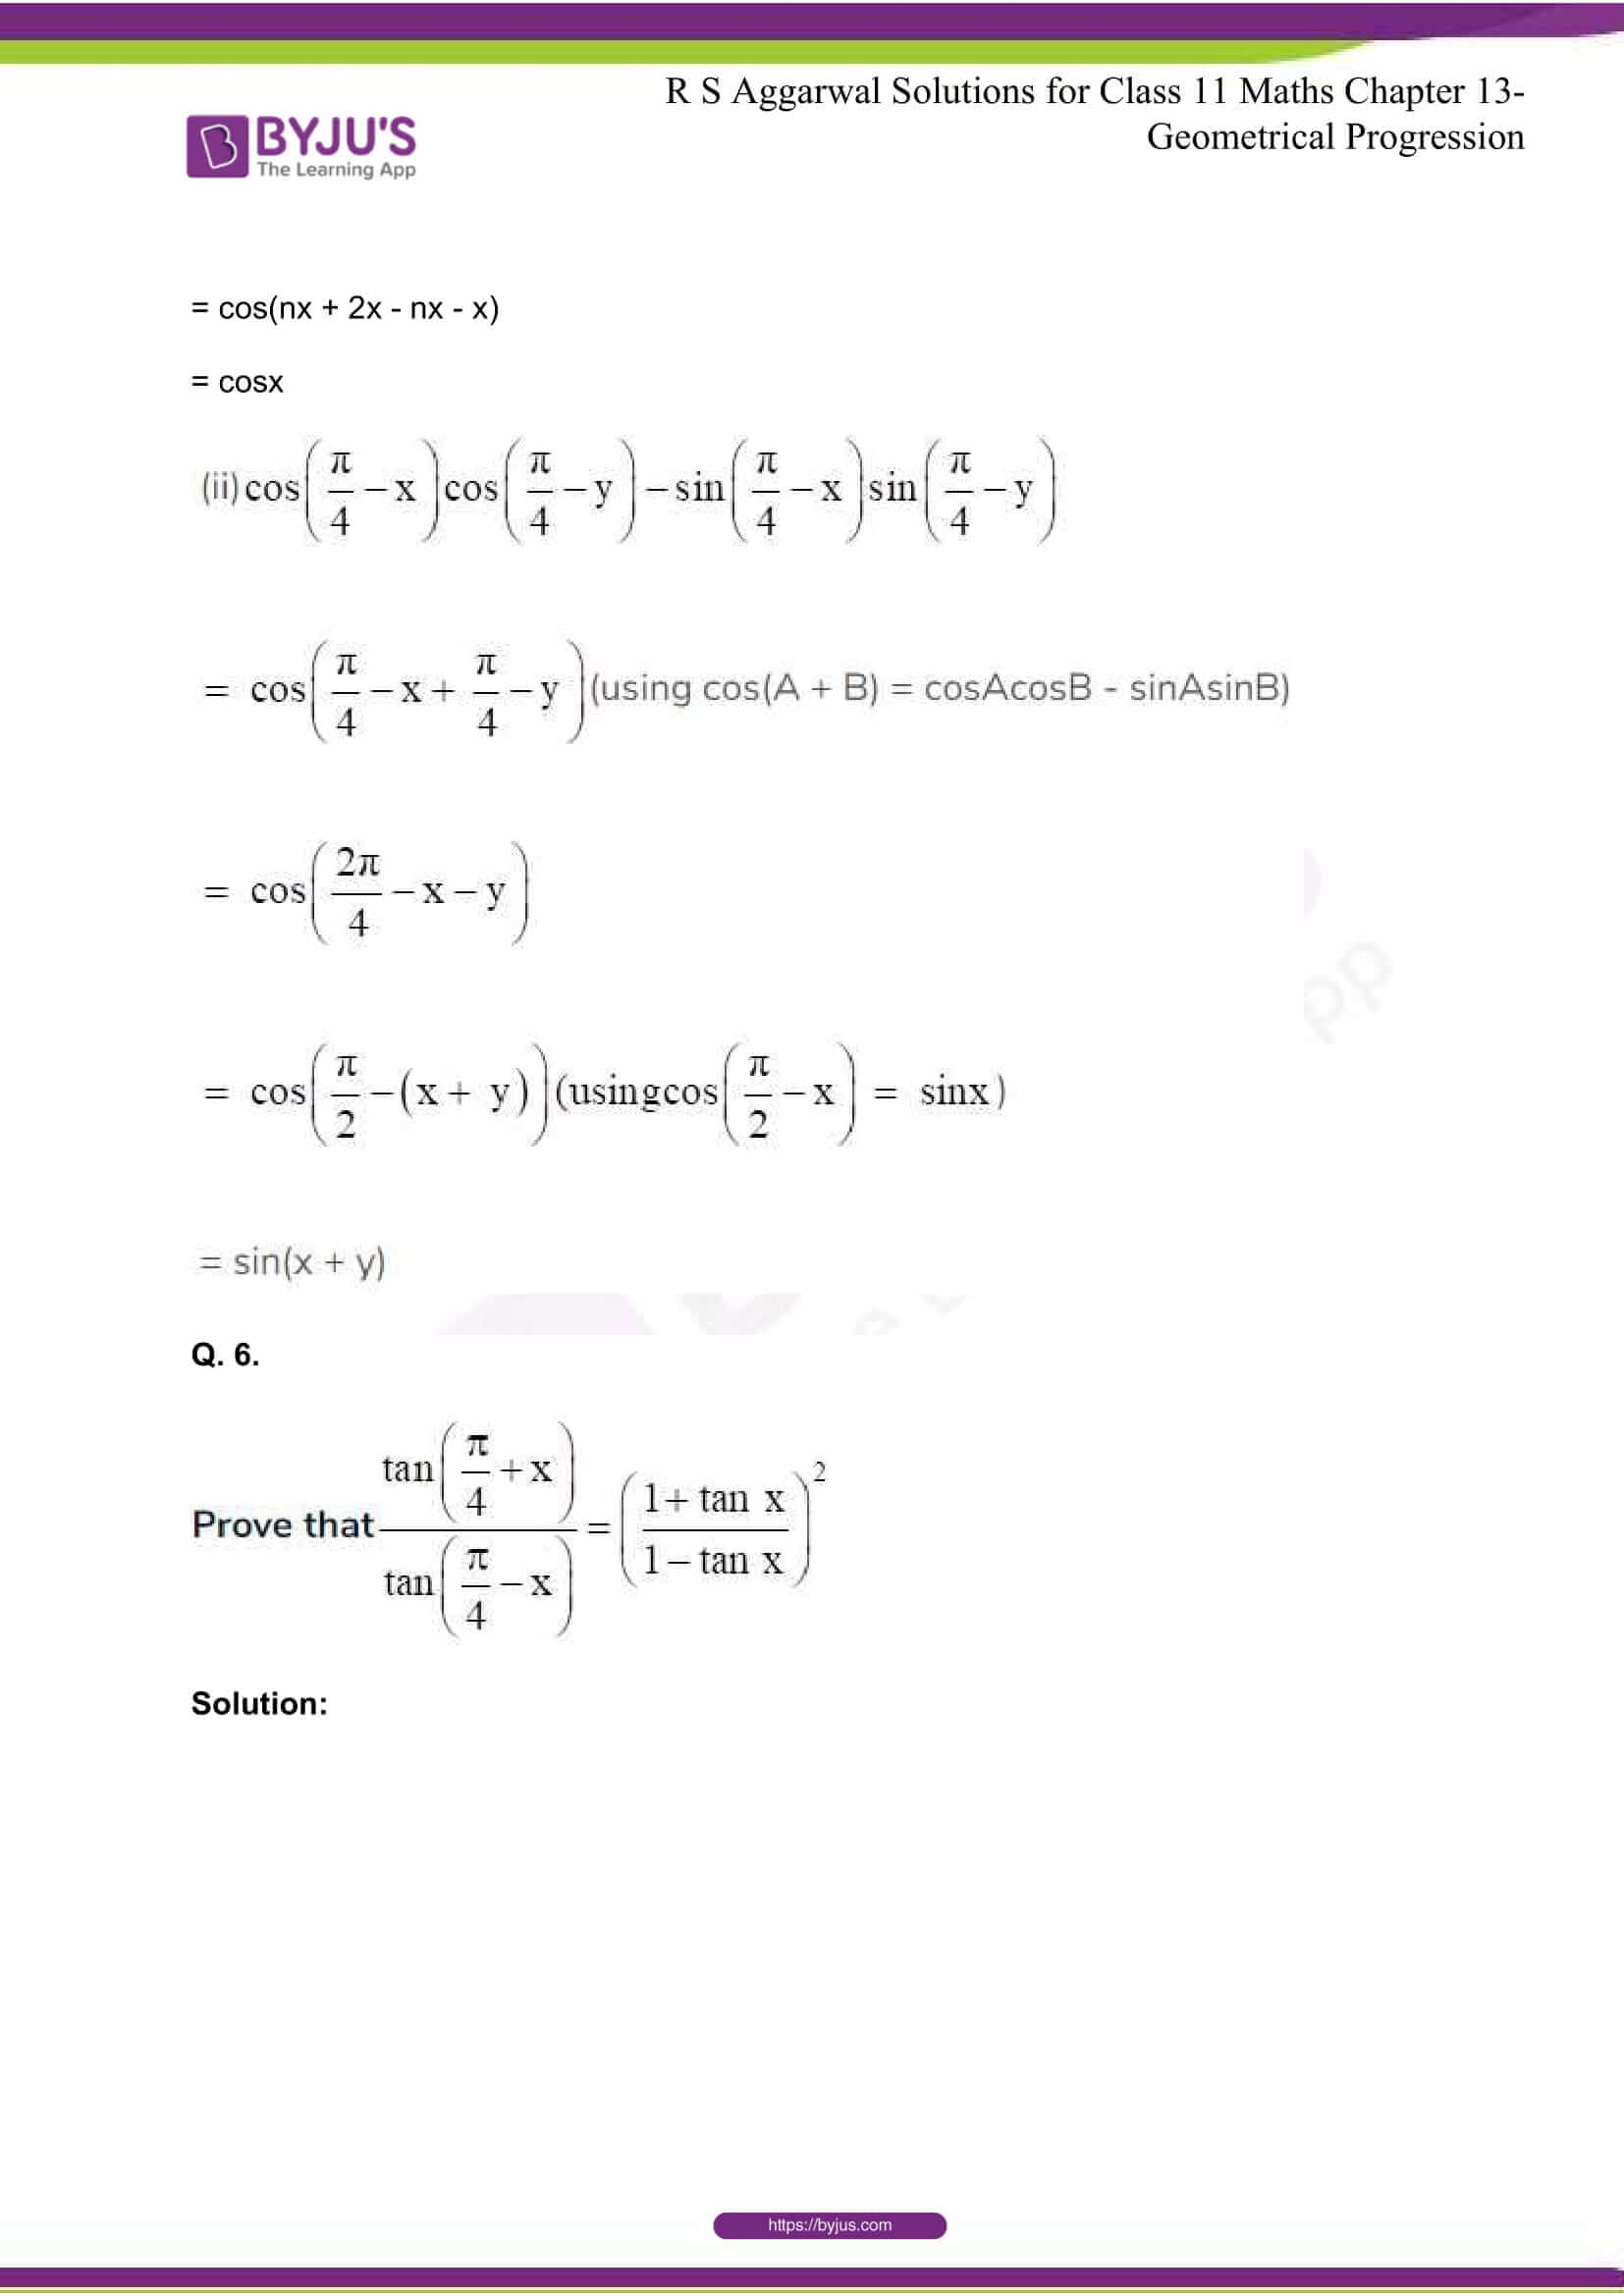 RS Aggarwal Sol Class 11 Maths Chapter 15